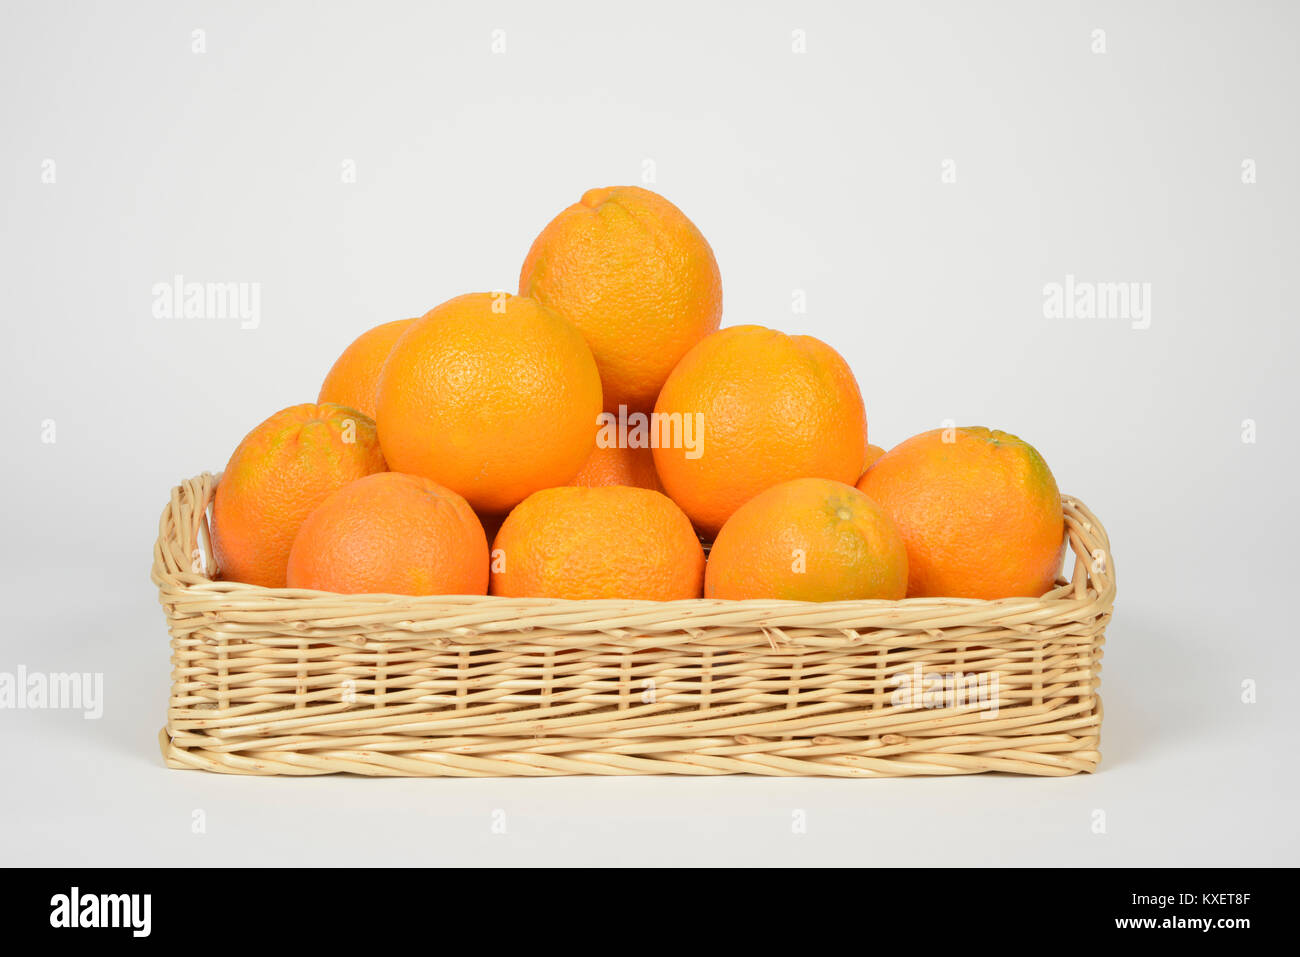 Oranges in a basket on white background - Stock Image